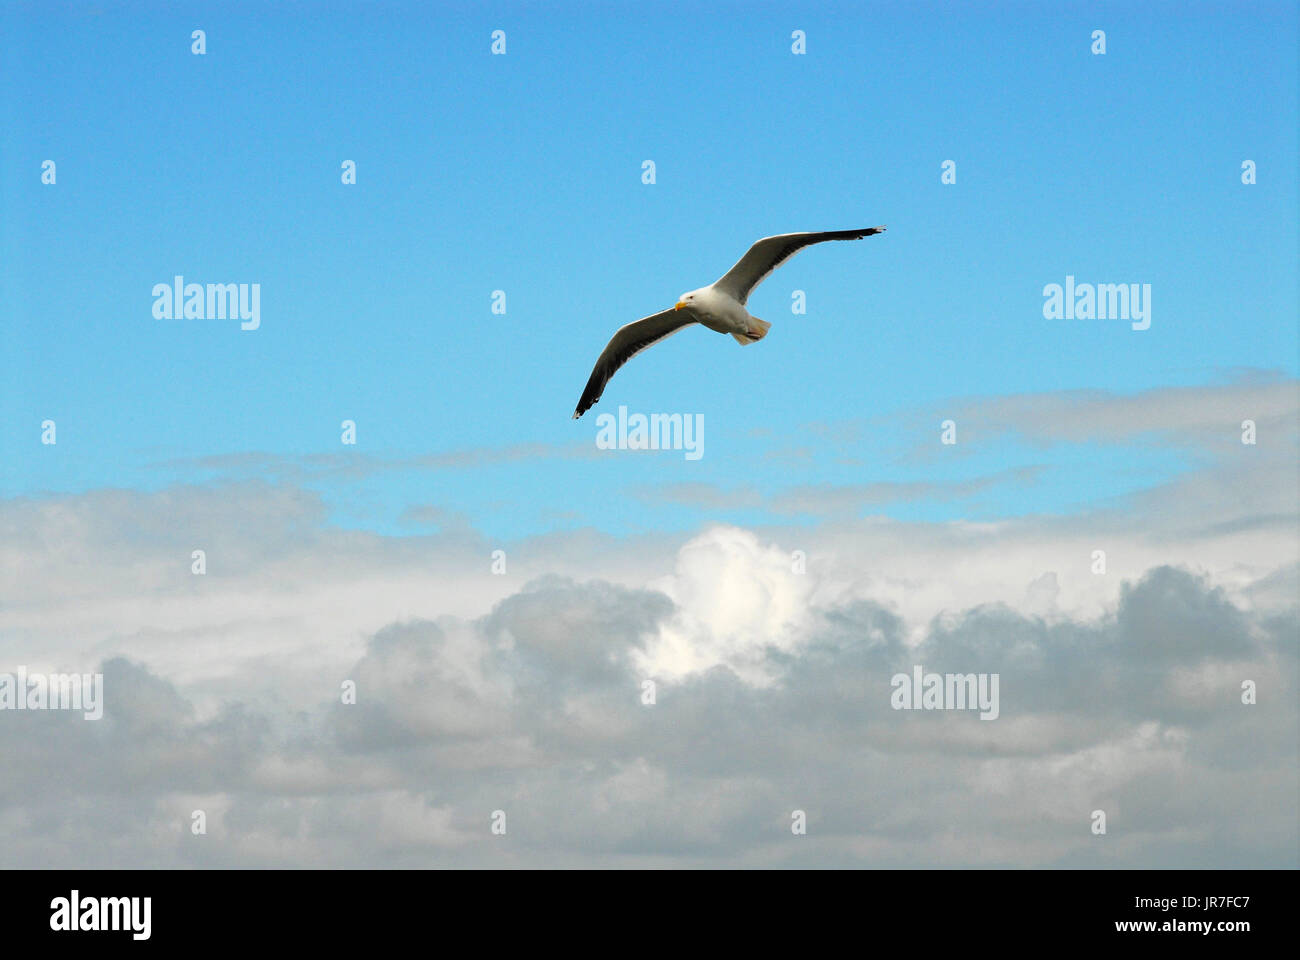 Chesil Beach, Dorset. 04th Aug, 2017. UK Weather: A seagull soars in front of a mix of rain clouds and blue sky on a day of sunny spells for the Isle of Portland Credit: stuart fretwell/Alamy Live News - Stock Image